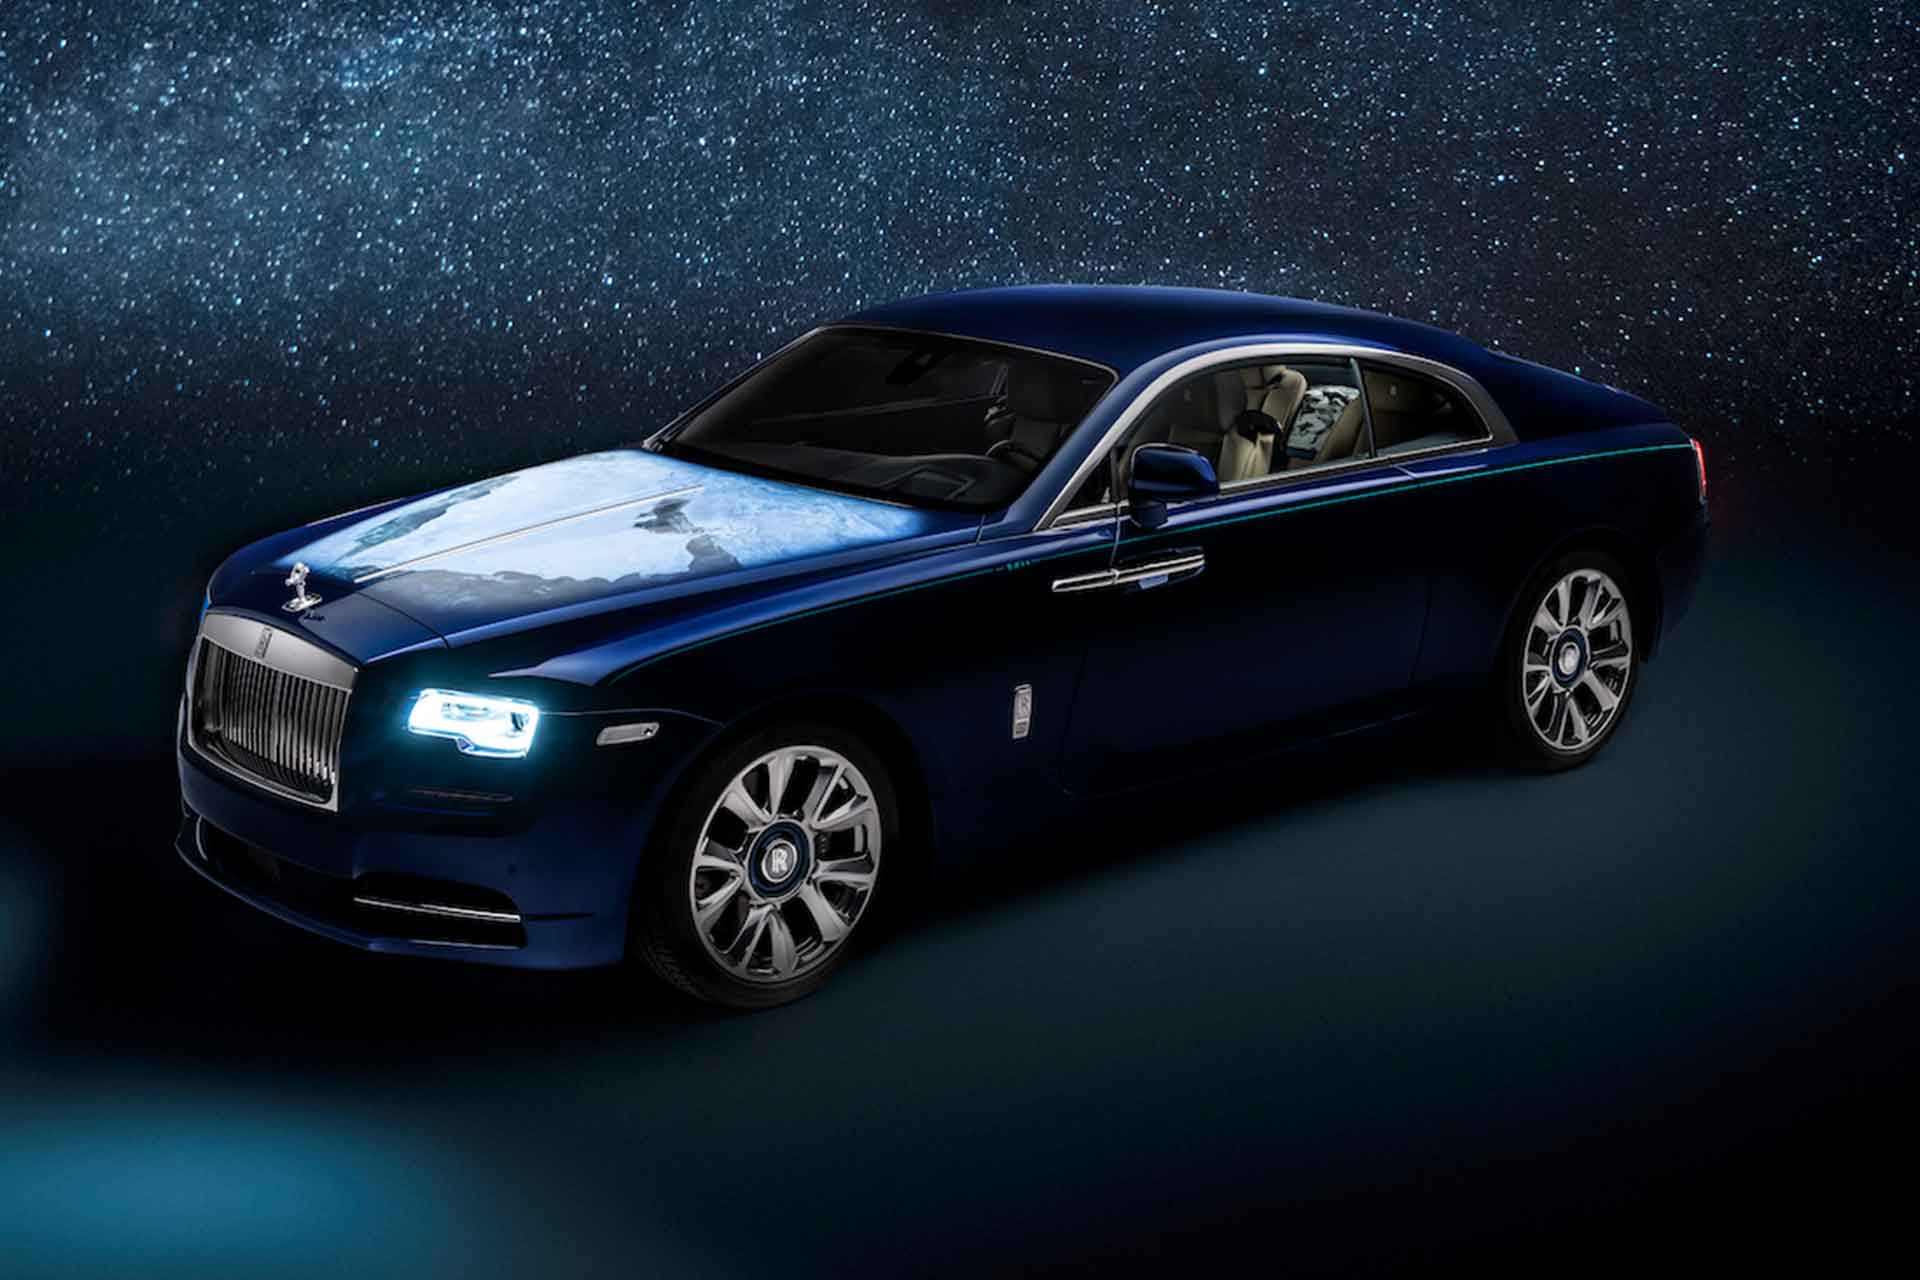 Rolls-Royce Wraith 'Inspired By Earth' Coupe